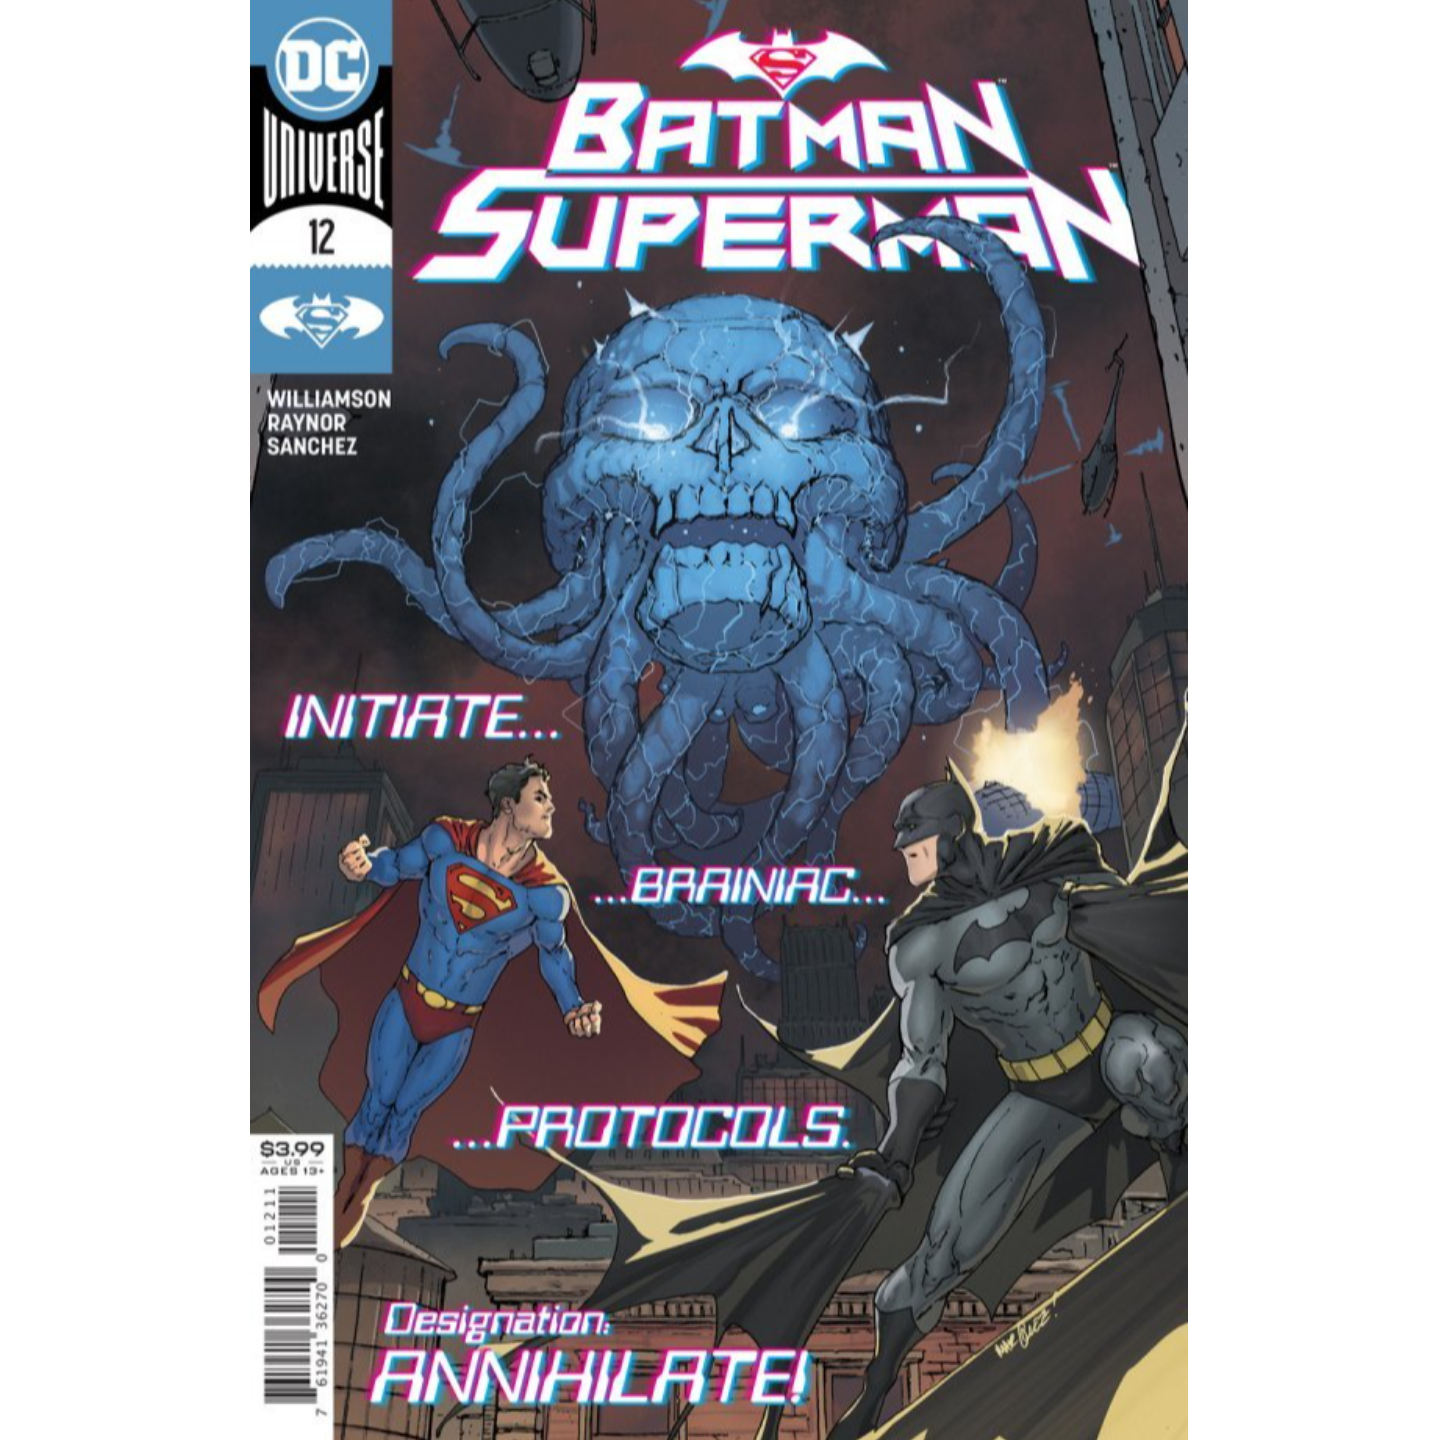 BATMAN SUPERMAN #12 CVR A DAVID MARQUEZ